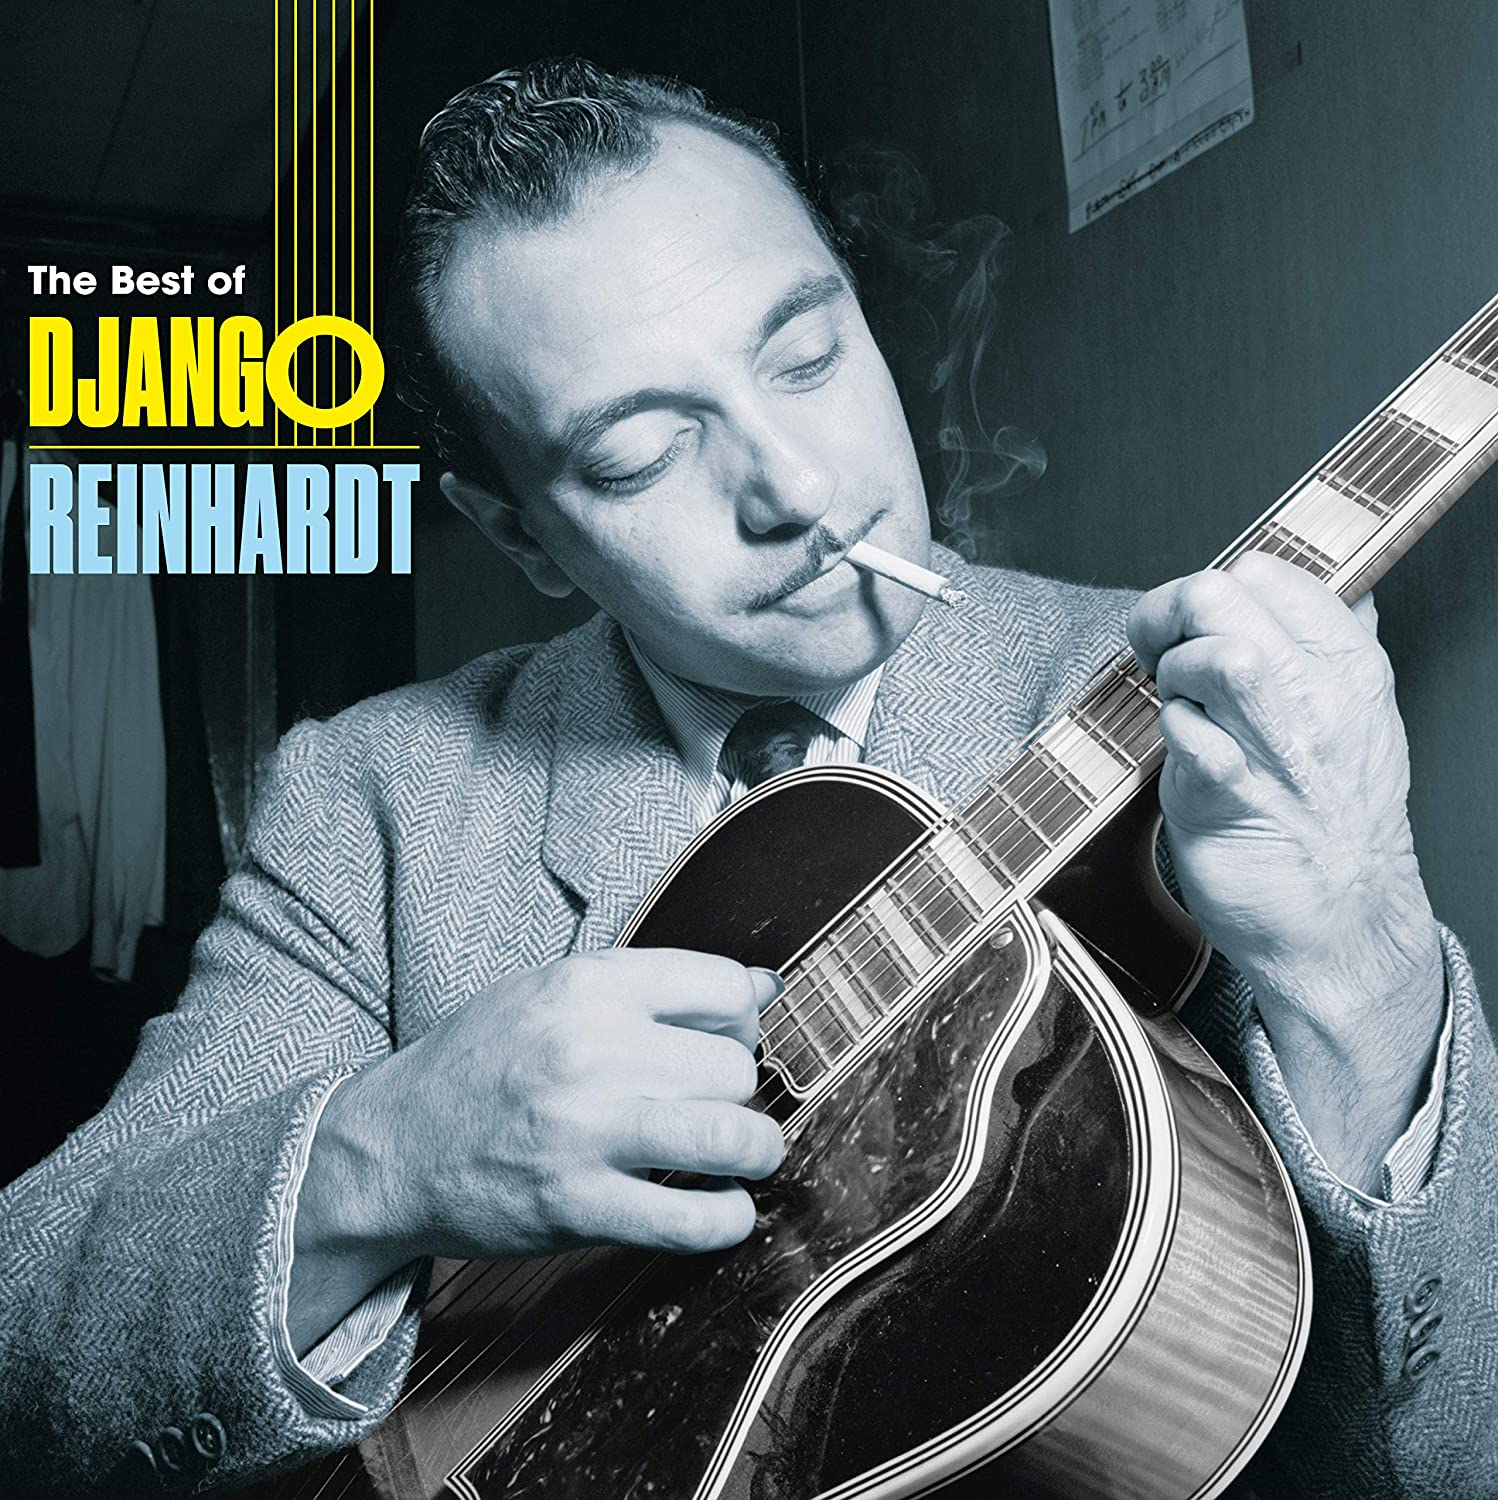 Django Reinhardt - Best Of [LP] (Solid Orange Vinyl, import) - Urban Vinyl | Records, Headphones, and more.